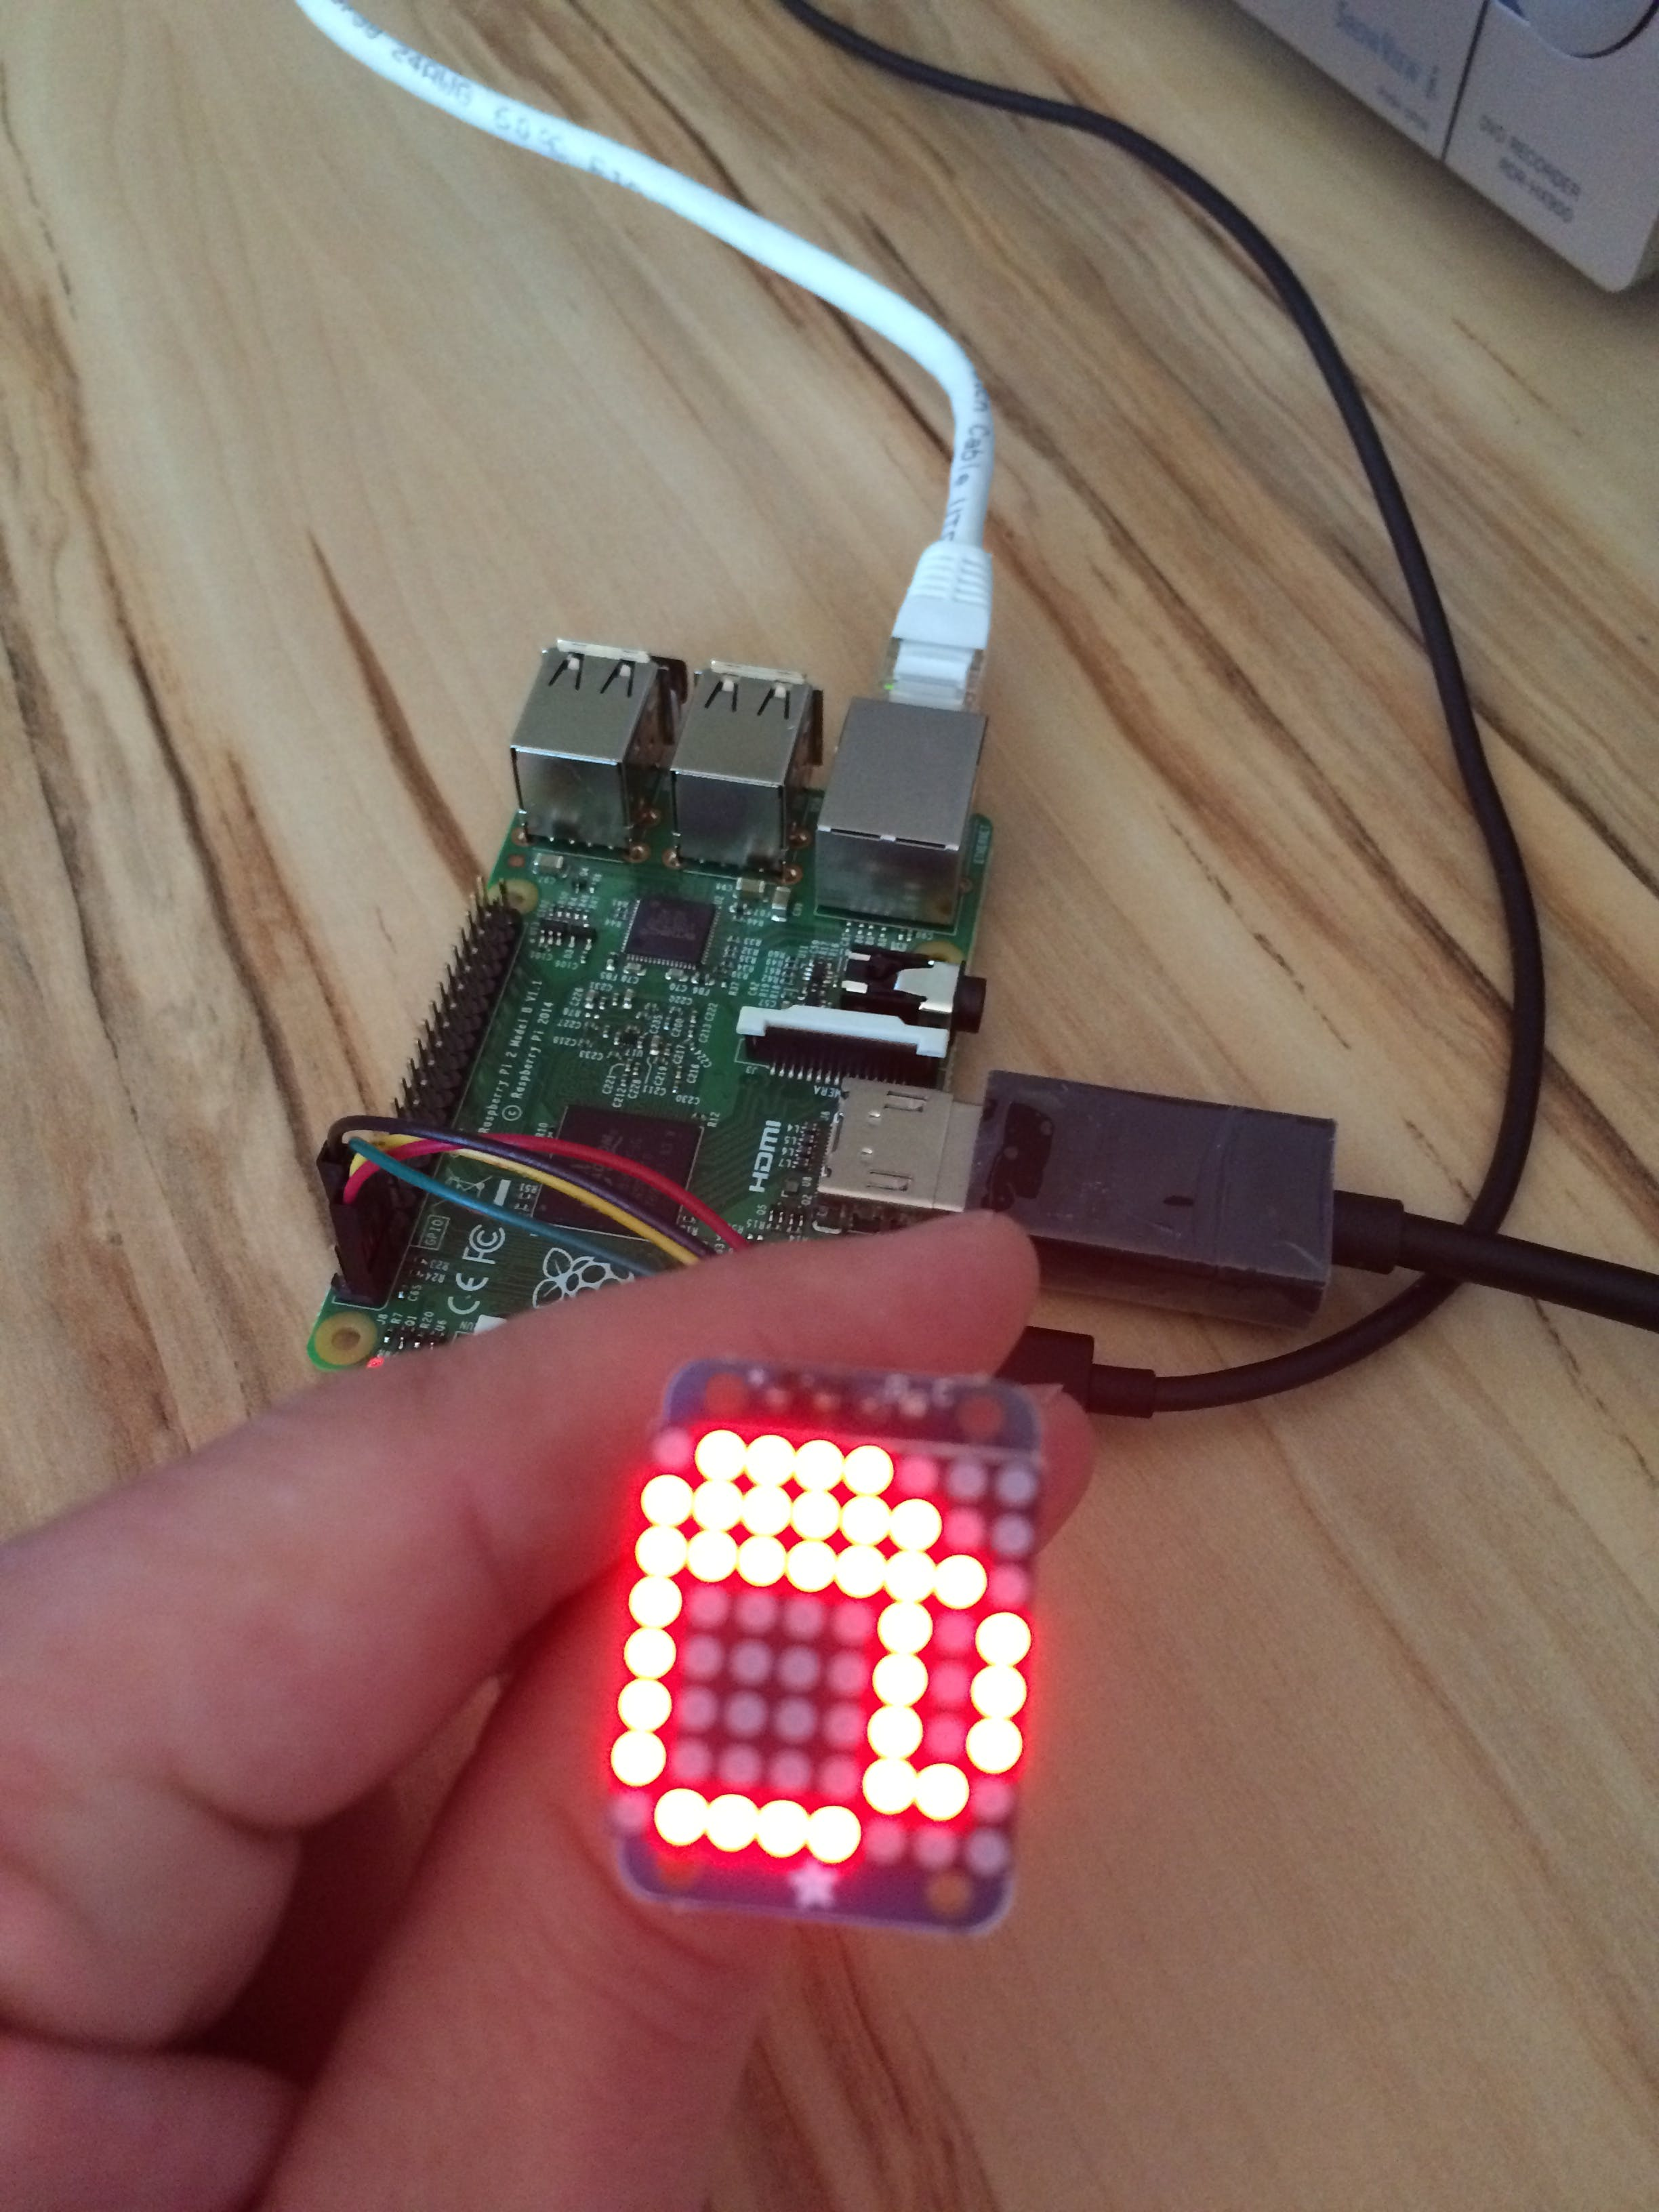 8x8 LED Matrix display on RPi 2 with Windows 10 IoT Core